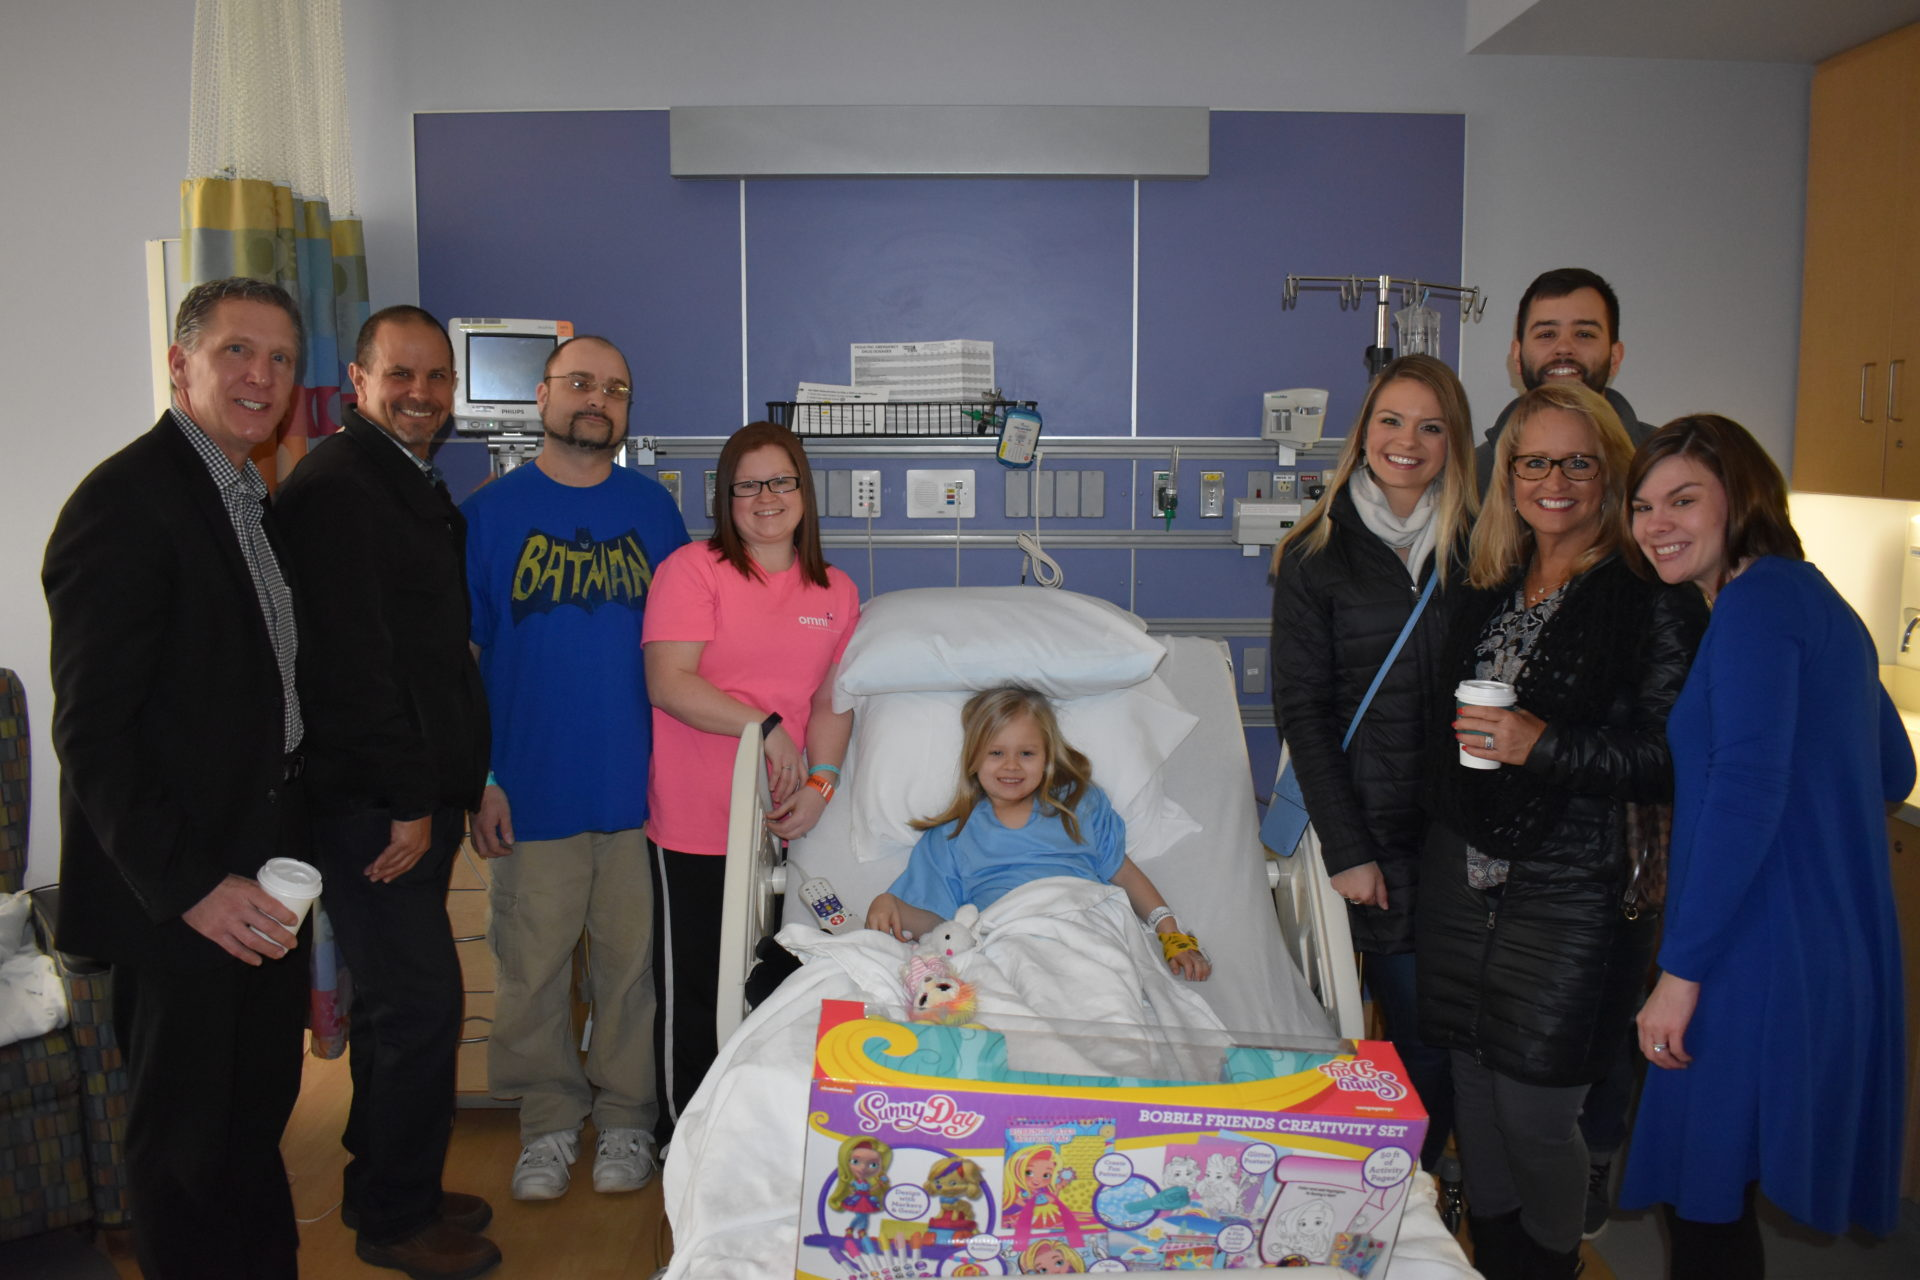 Rogy Family and Children's Hospital of Illinois Family